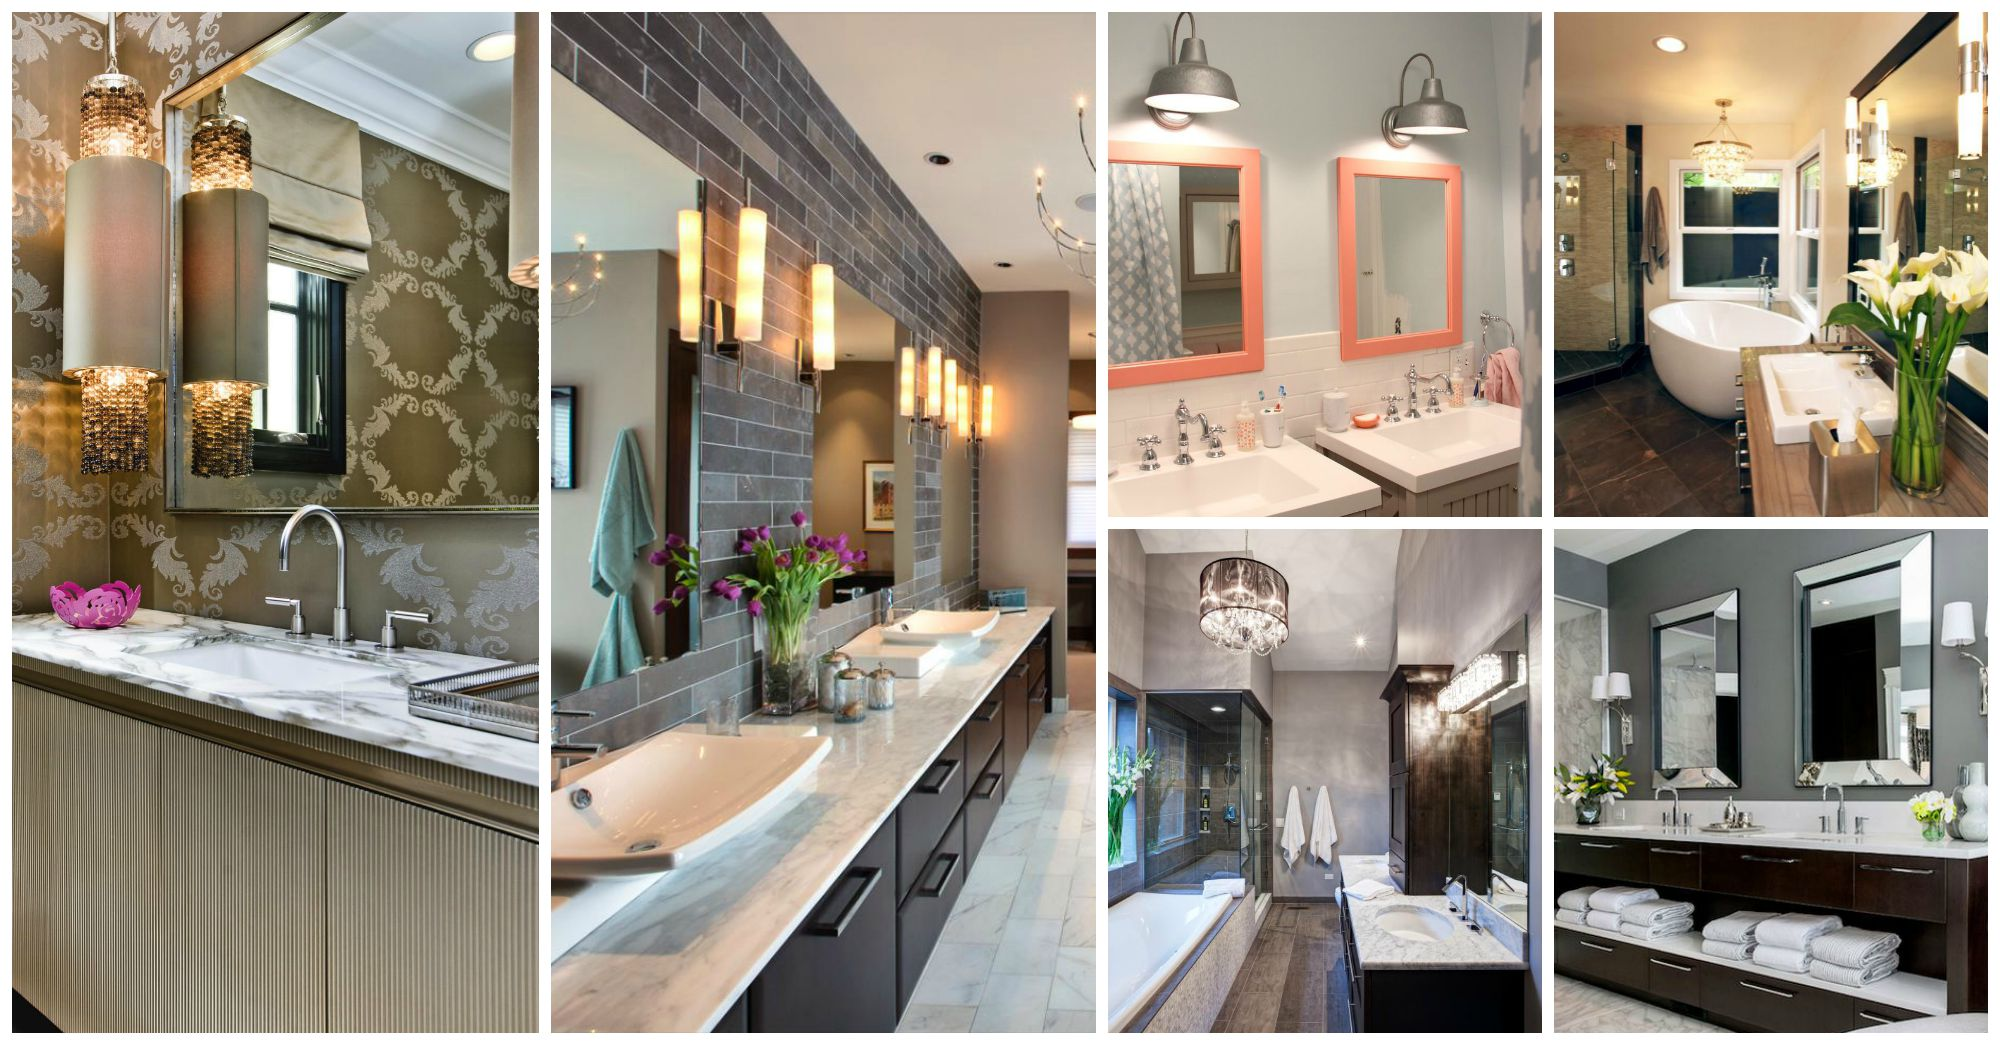 10 Of The Best Lighting Ideas for Your Bathroom